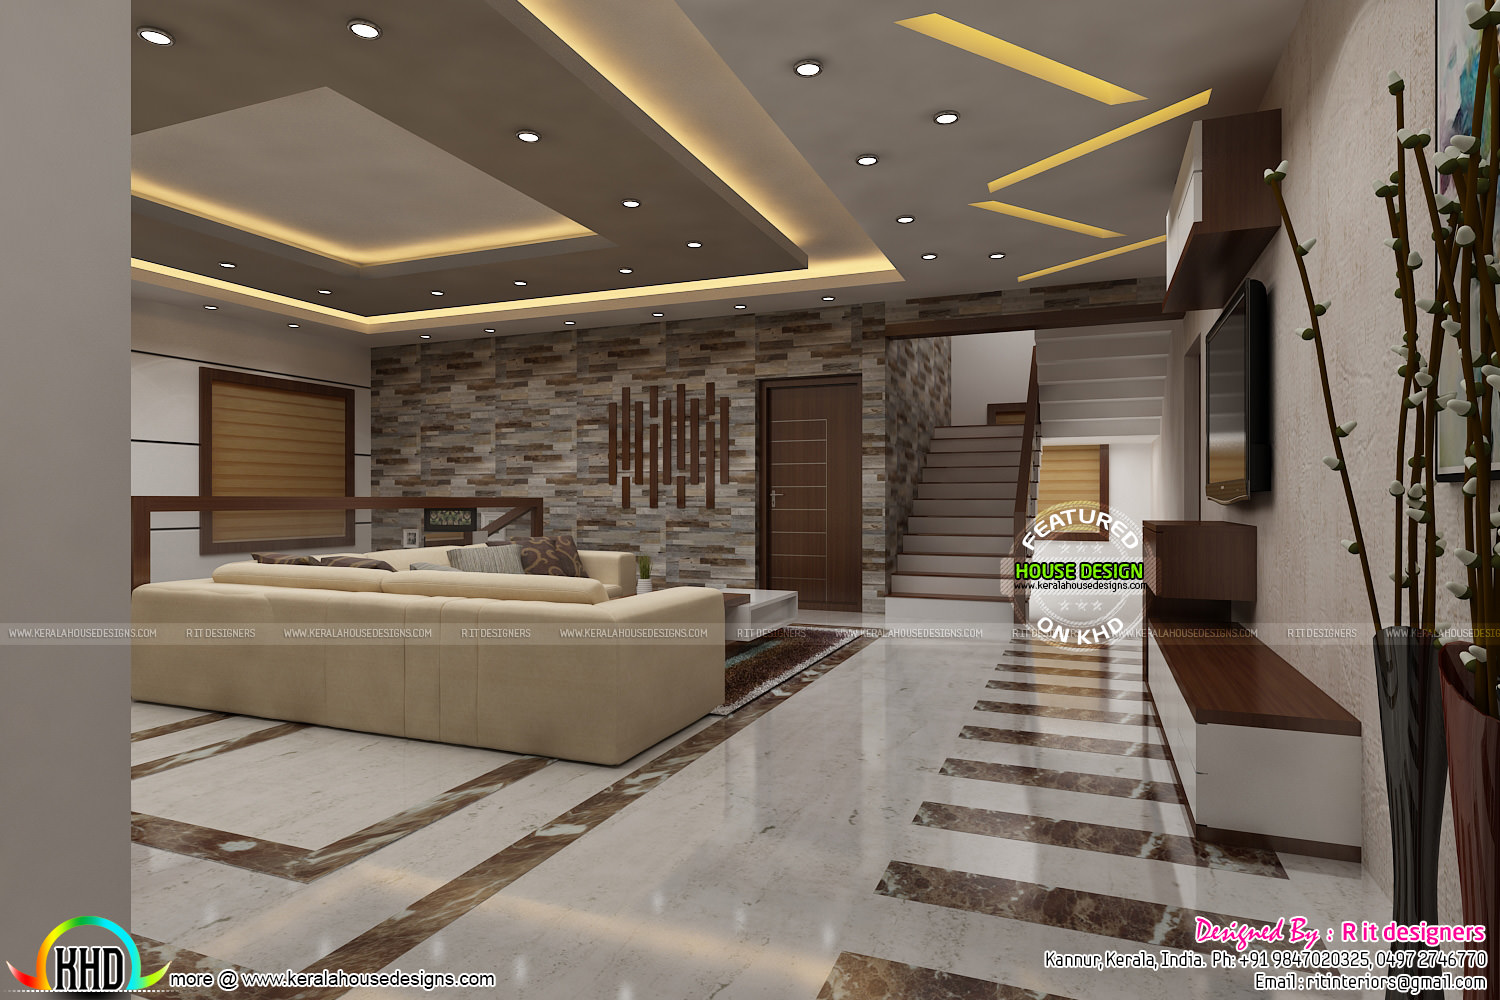 Most modern kerala living room interior kerala home for Interior design for living room chennai